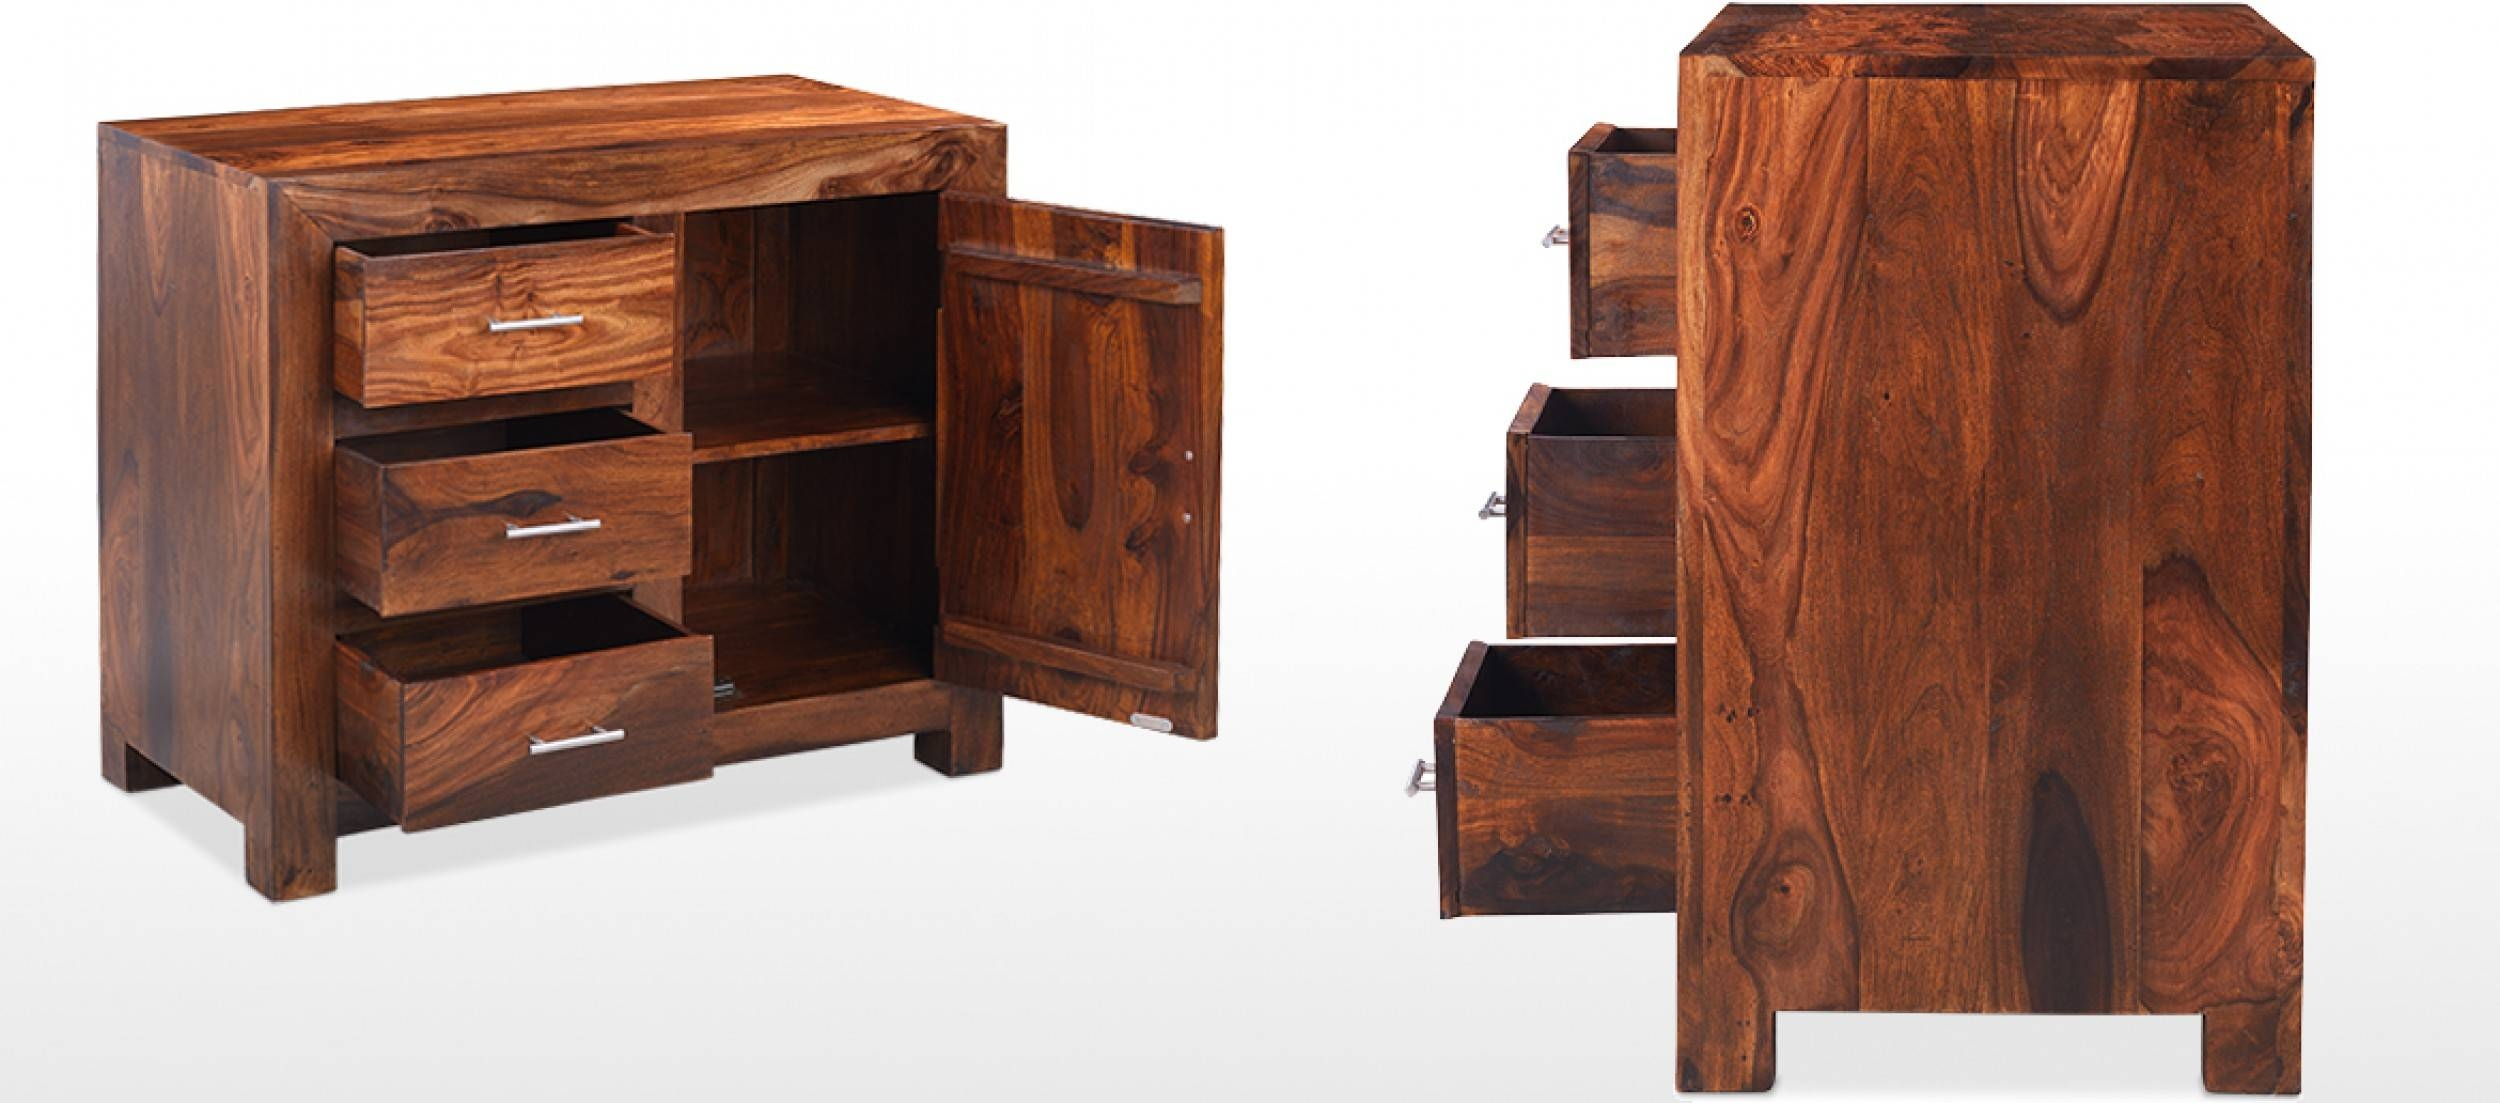 Cube Sheesham Small Sideboard | Quercus Living Intended For Small Dark Wood Sideboards (#2 of 15)